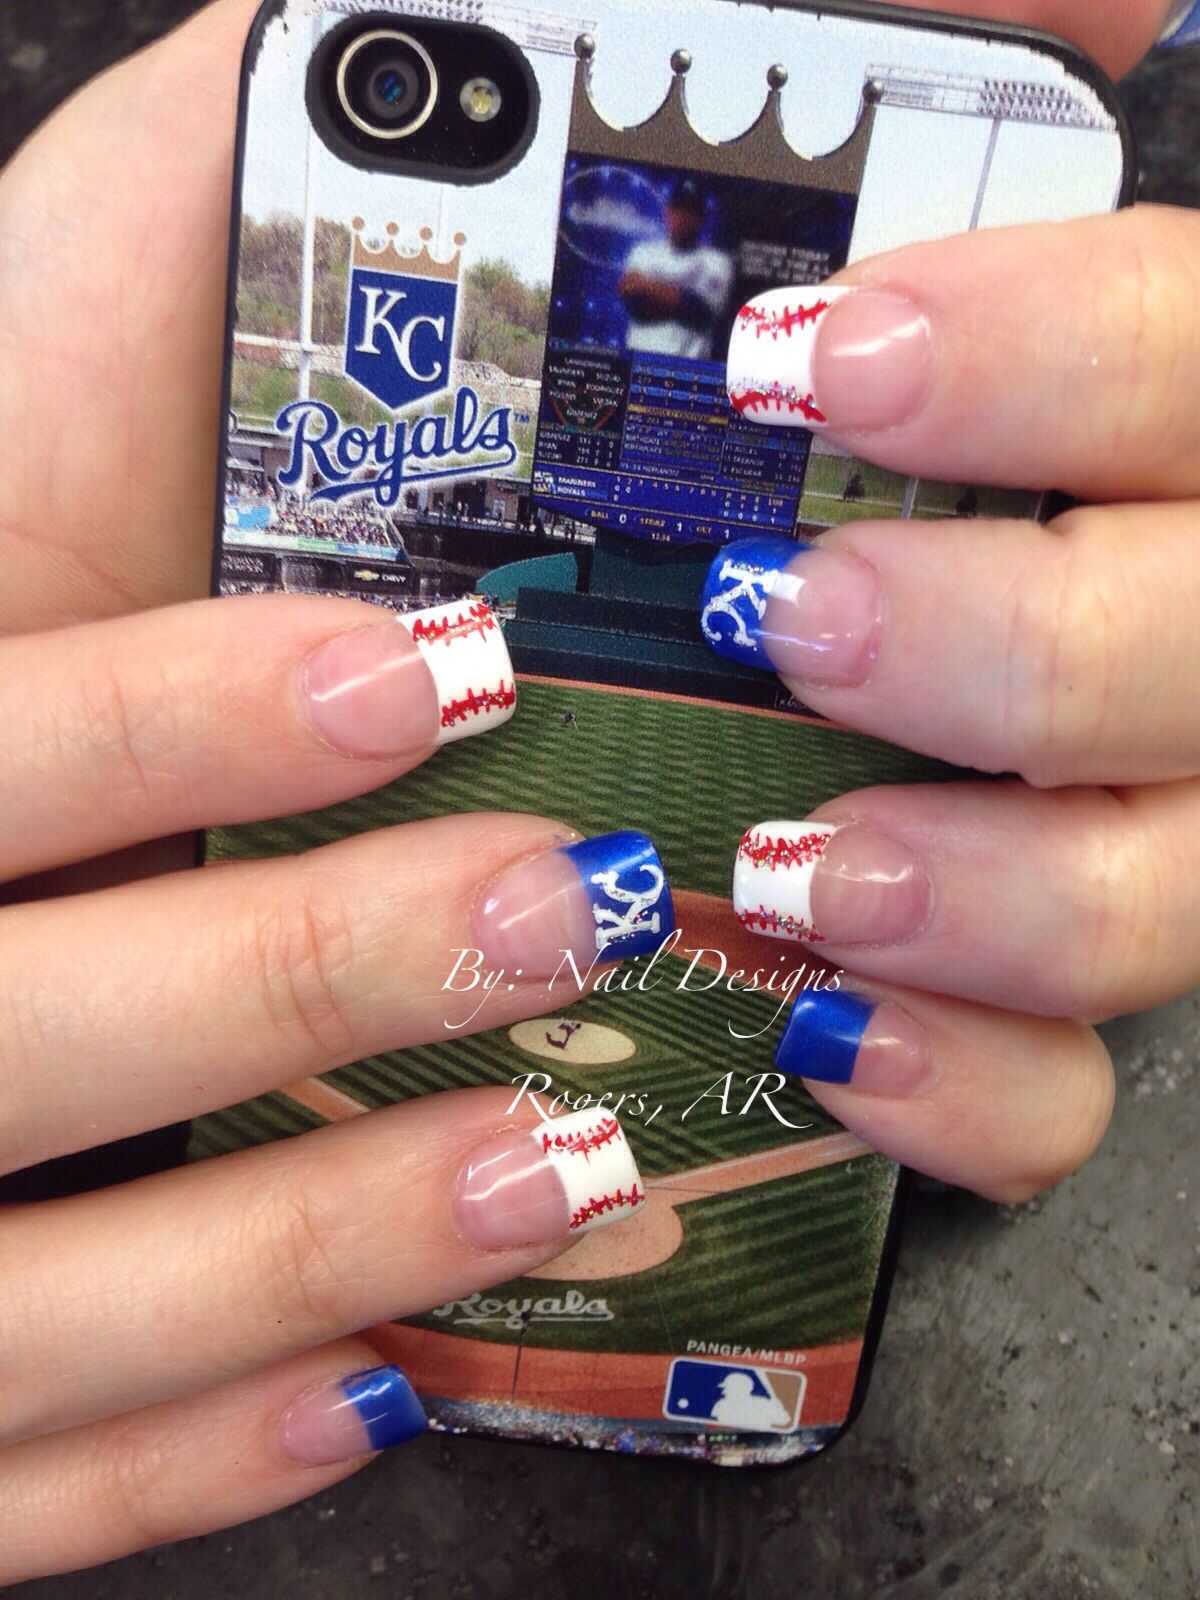 Kc royal fan | Nail Designs | Pinterest | Royals, Fans and Kansas ...